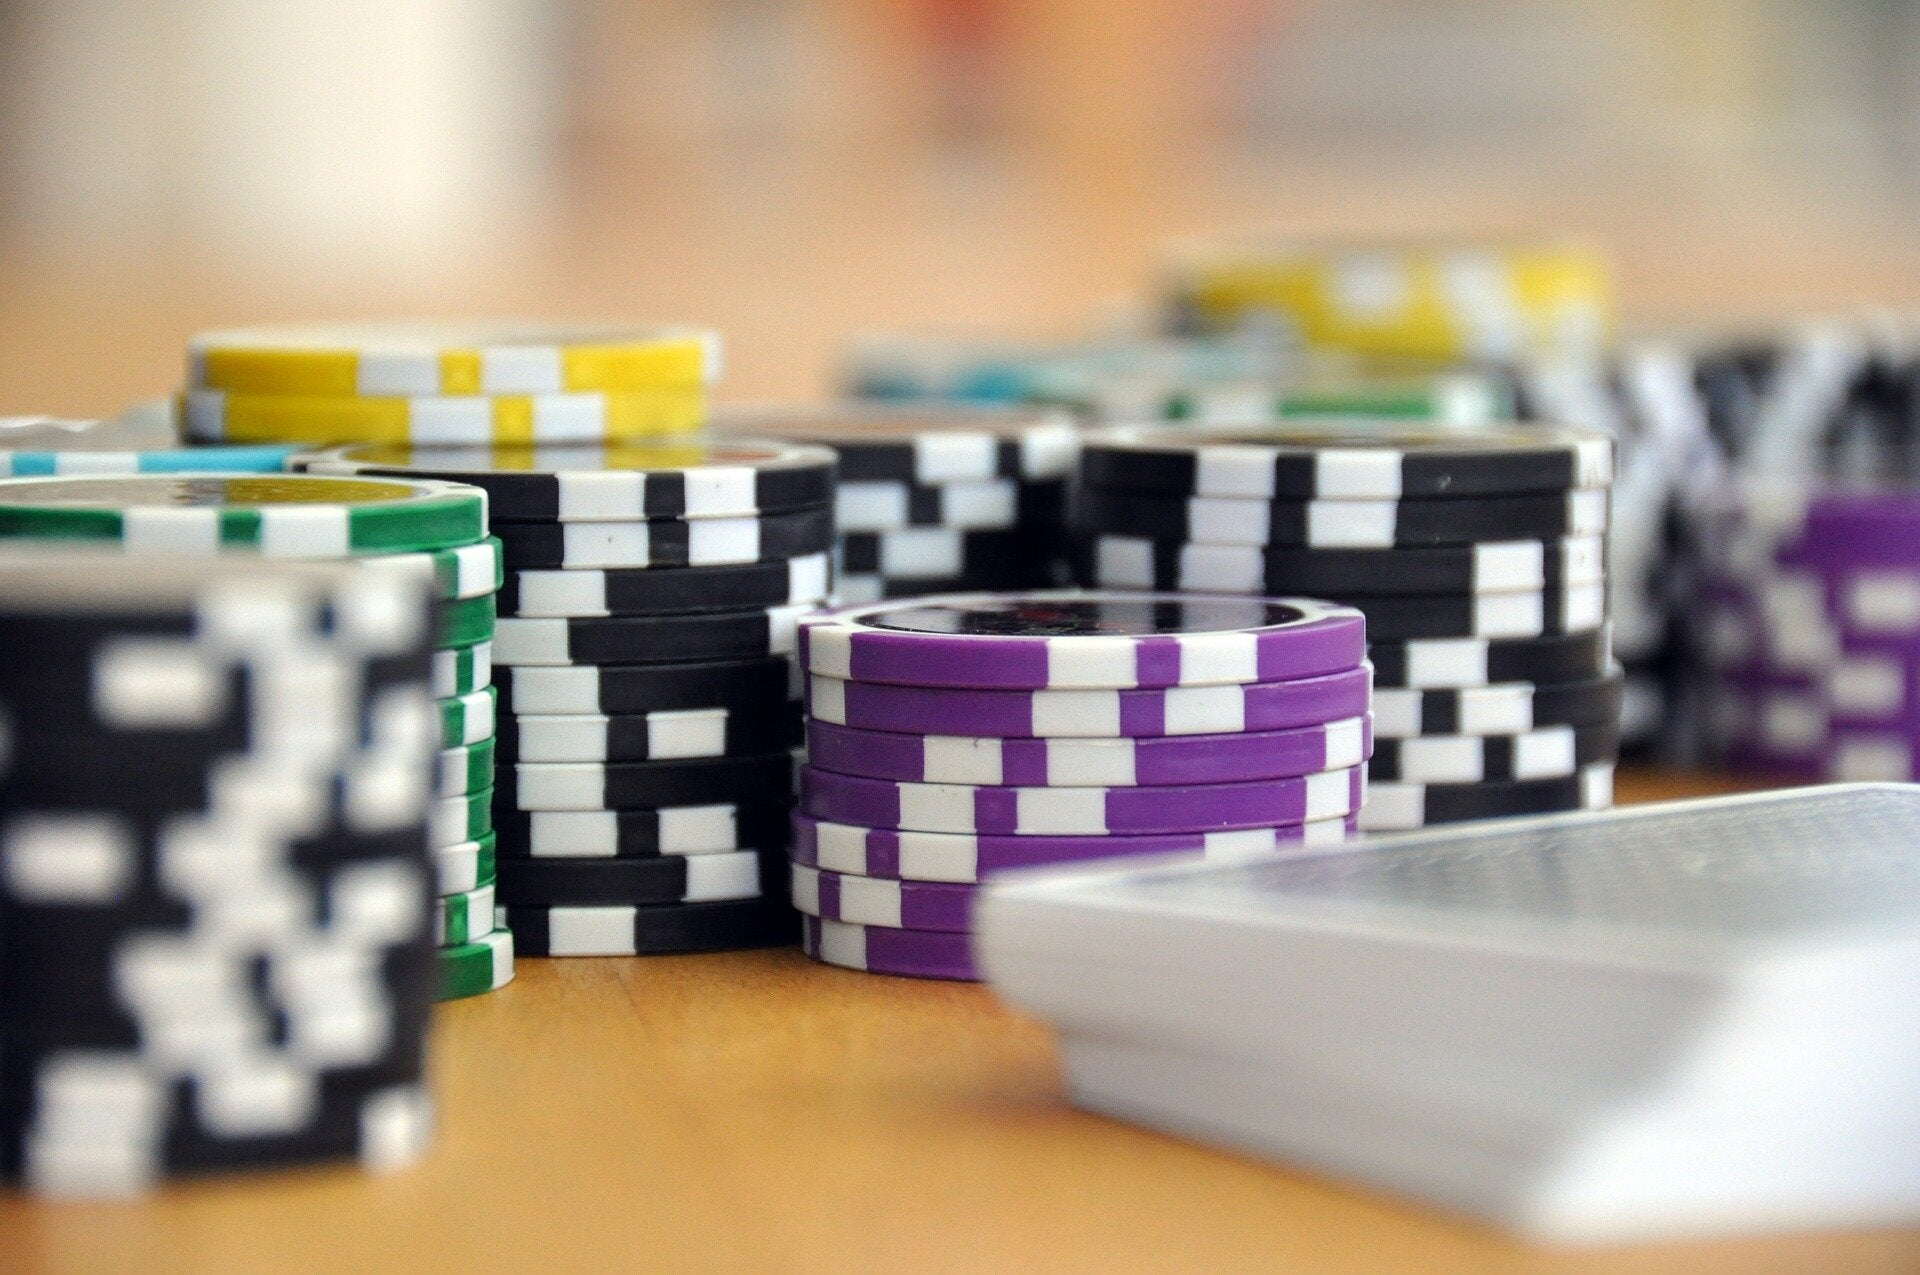 Voluntary limit-setting can keep intense online gamblers in check